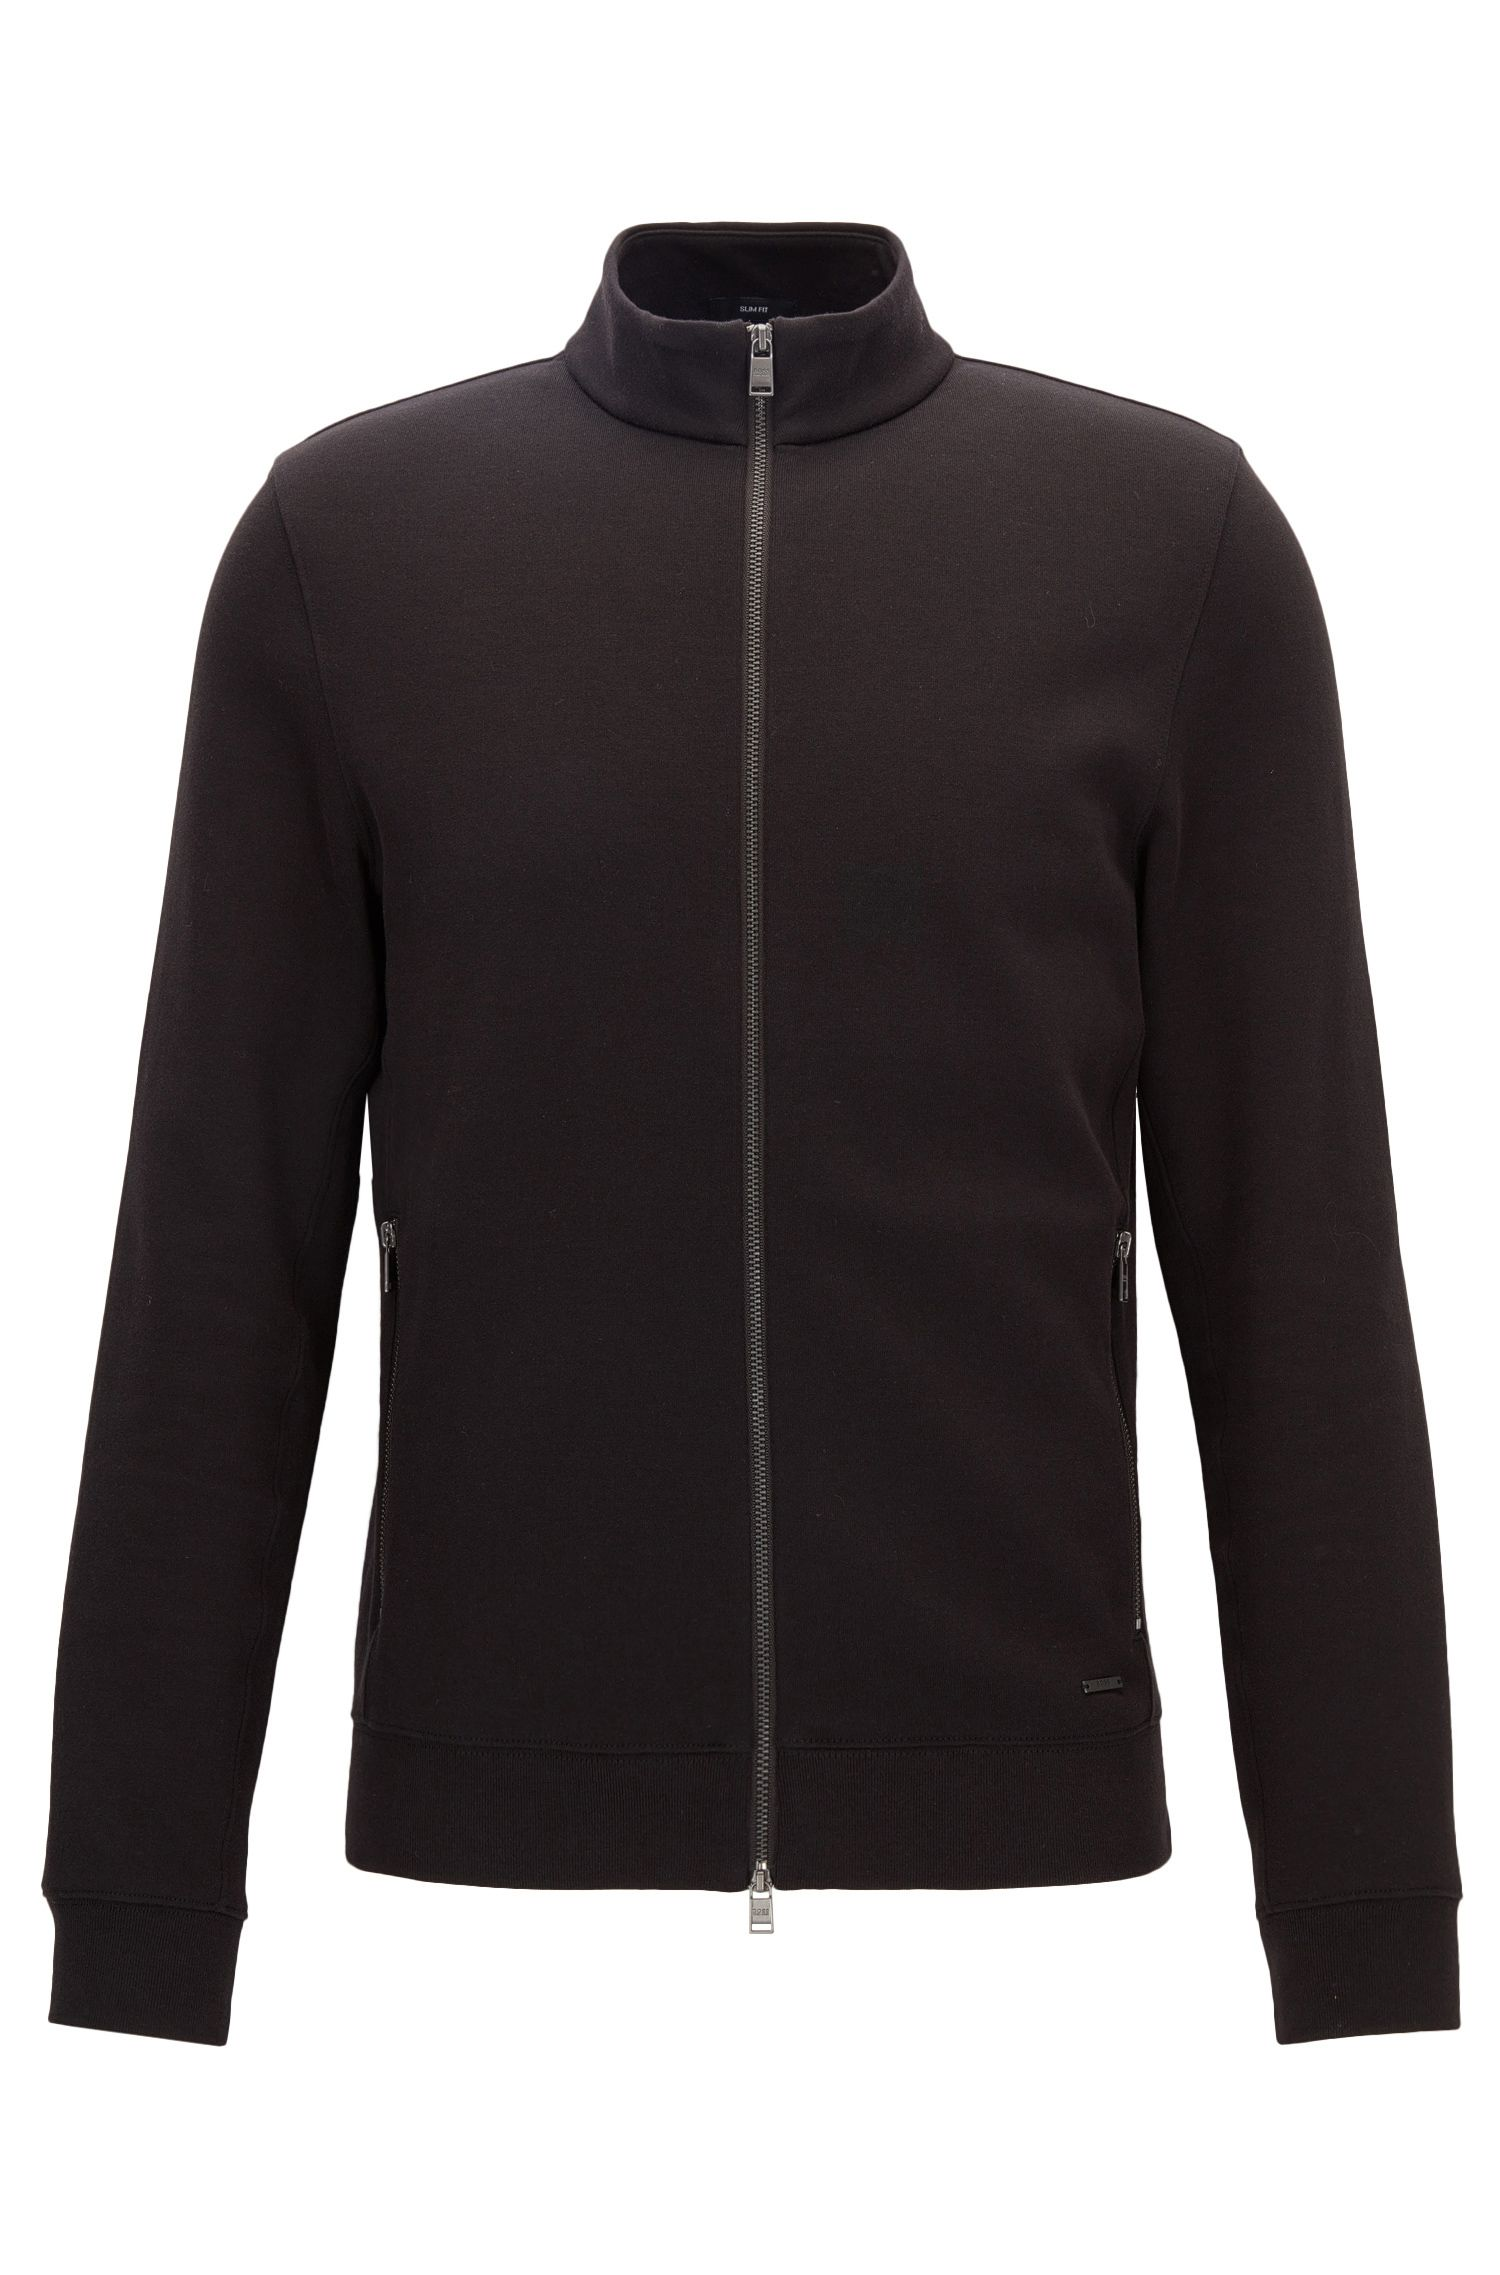 Veste molletonnée Slim Fit en tissu double face